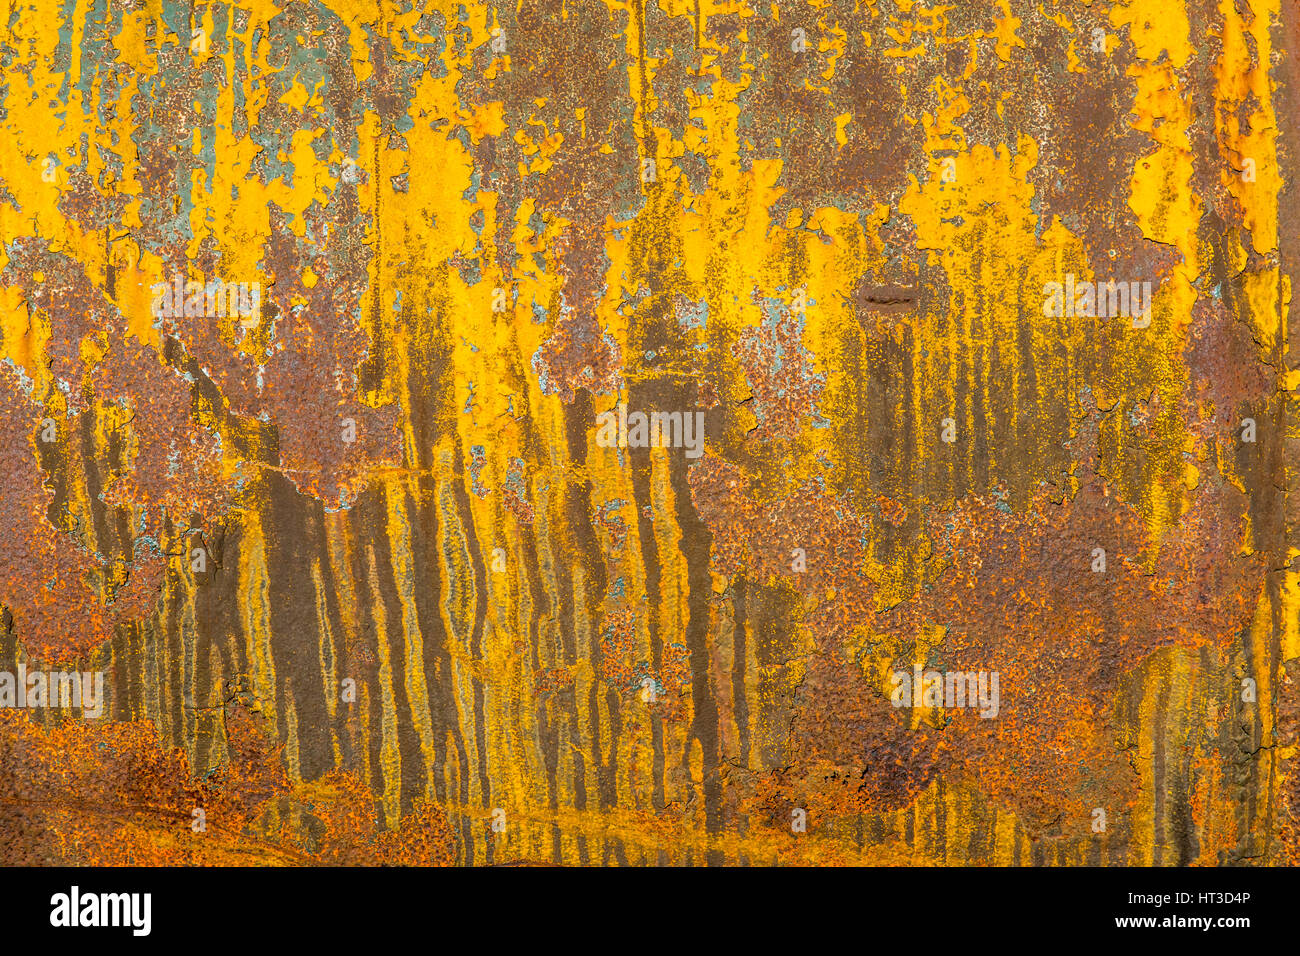 Rusty metal surface, structures, - Stock Image